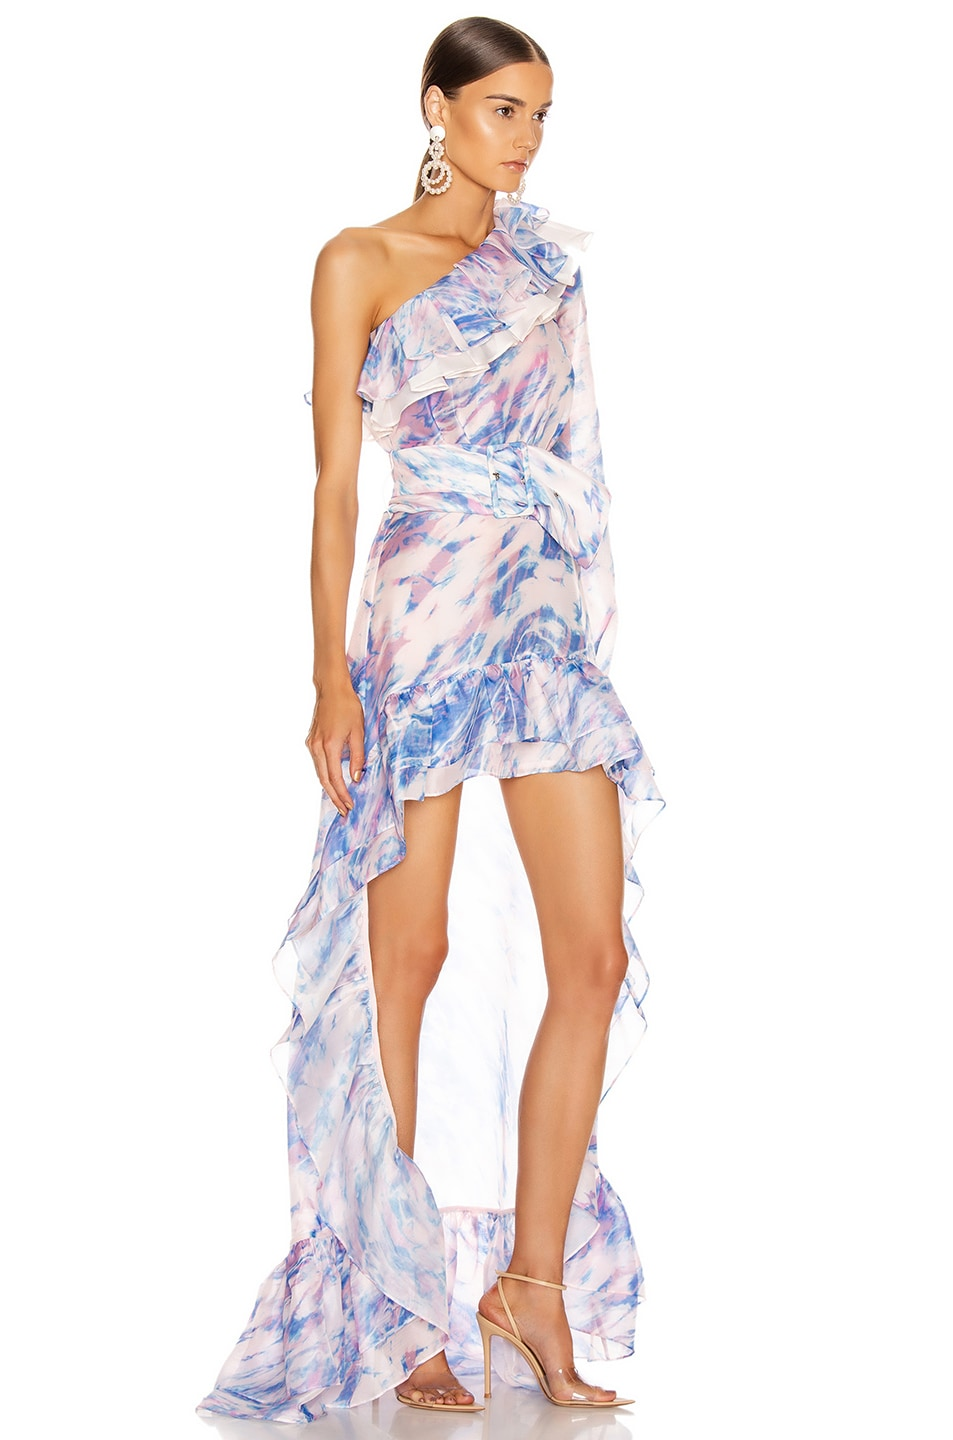 Image 2 of Atoir The Whirlwind Dress in Dreamscape Print